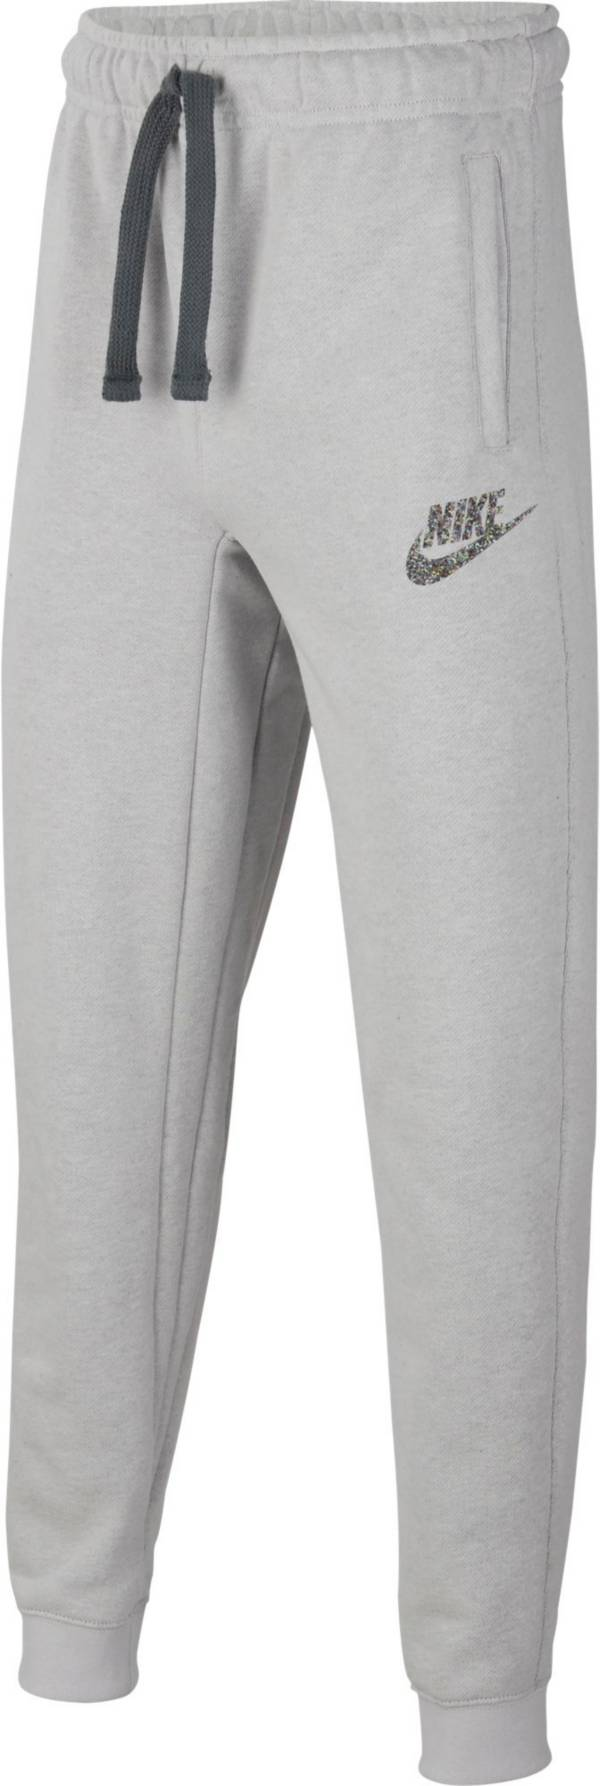 Nike Boys' Sportswear Fleece Pants product image